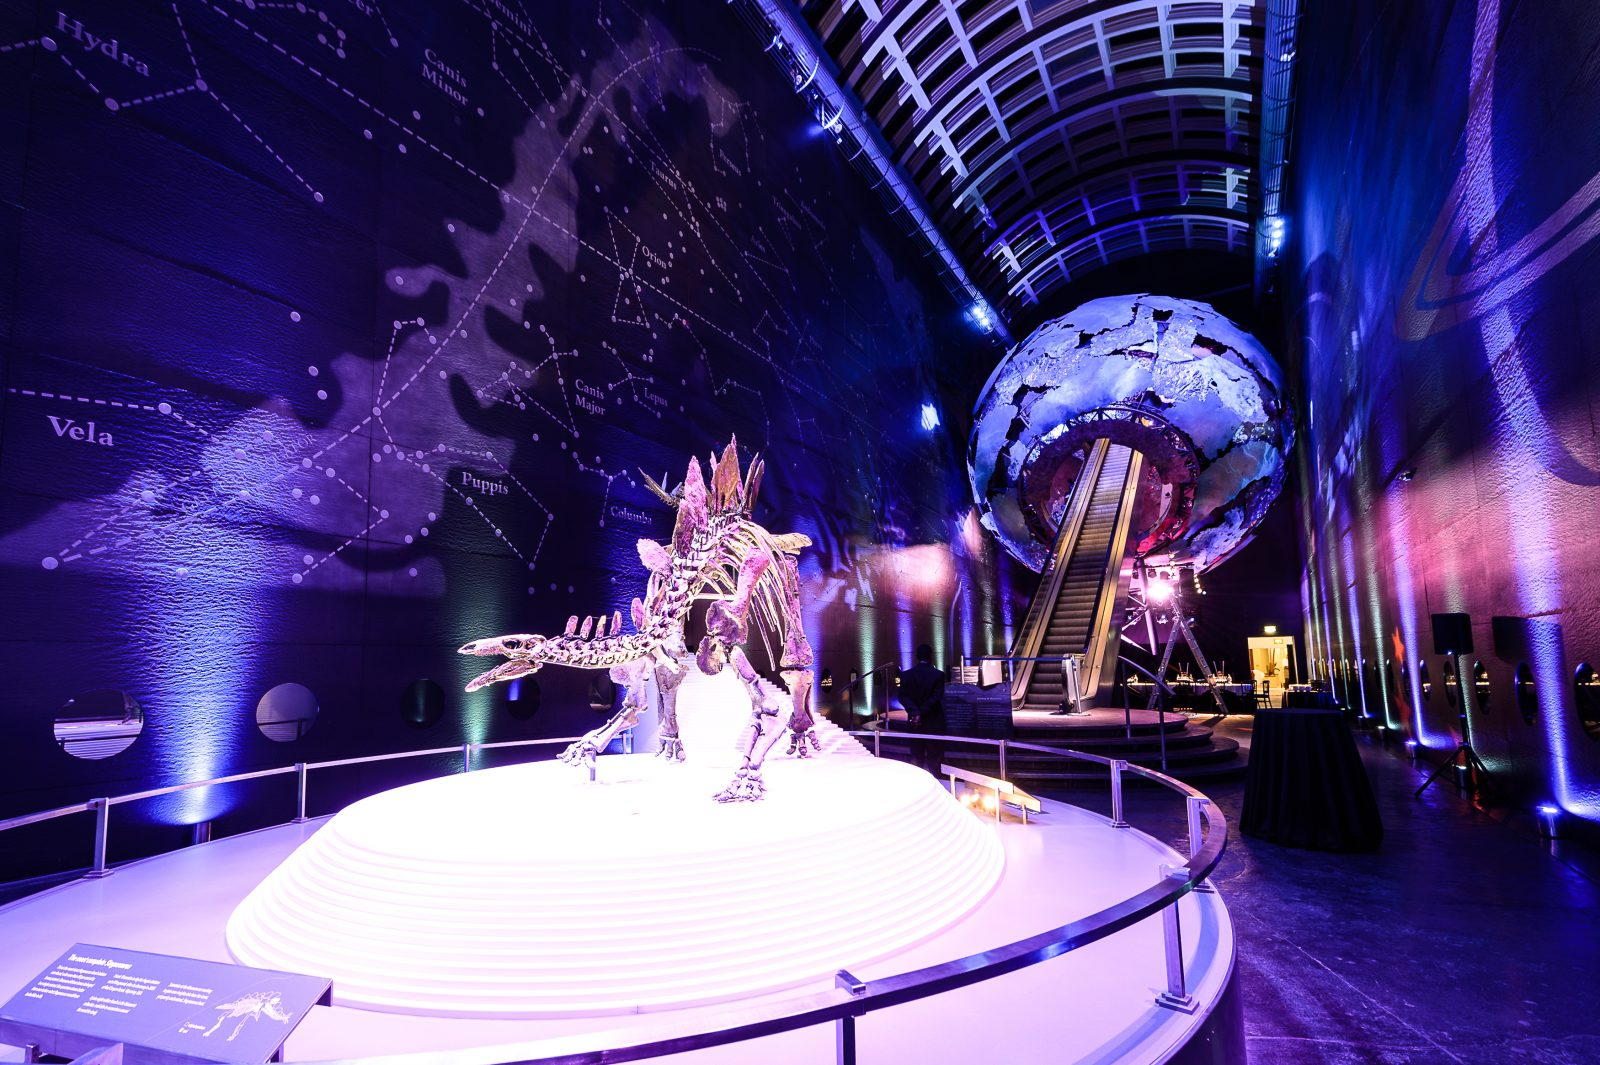 10th December 2015 Xmas Party @ Earth Halls, Natural History Museum, London PH: © Tom Horton